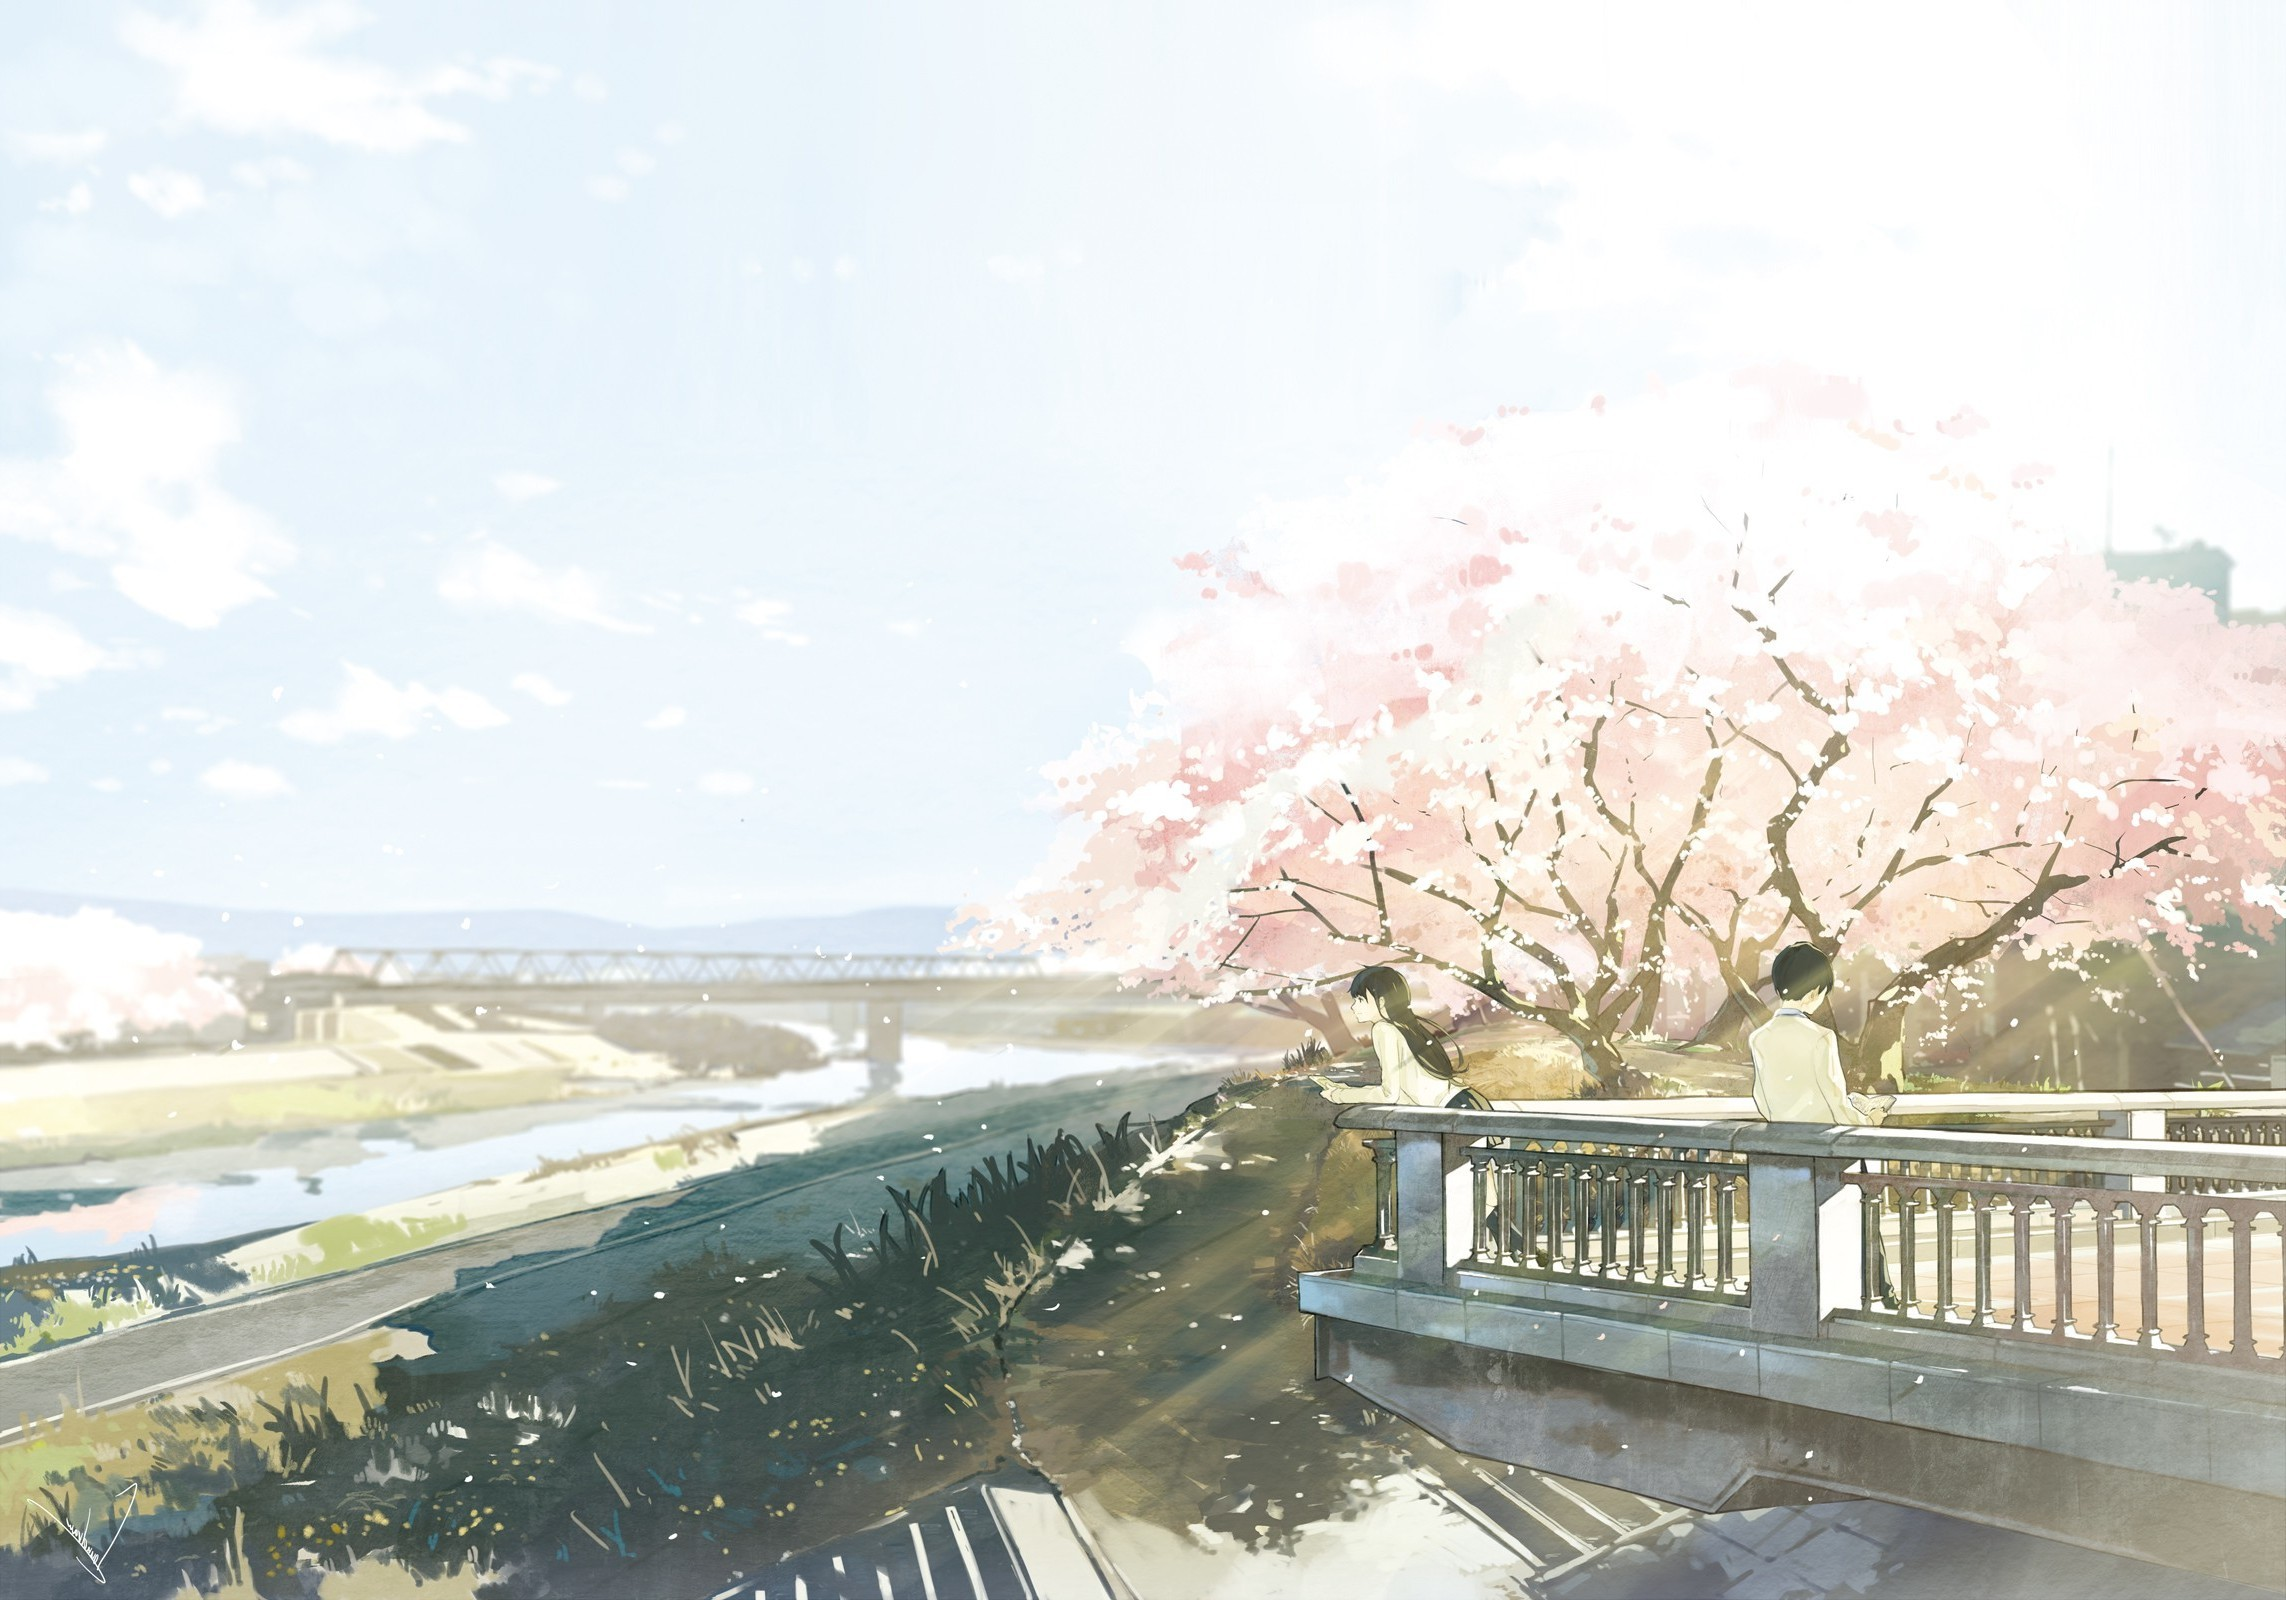 cherry Blossom, River, Bridge, Anime, Original Characters Wallpapers HD /  Desktop and Mobile Backgrounds